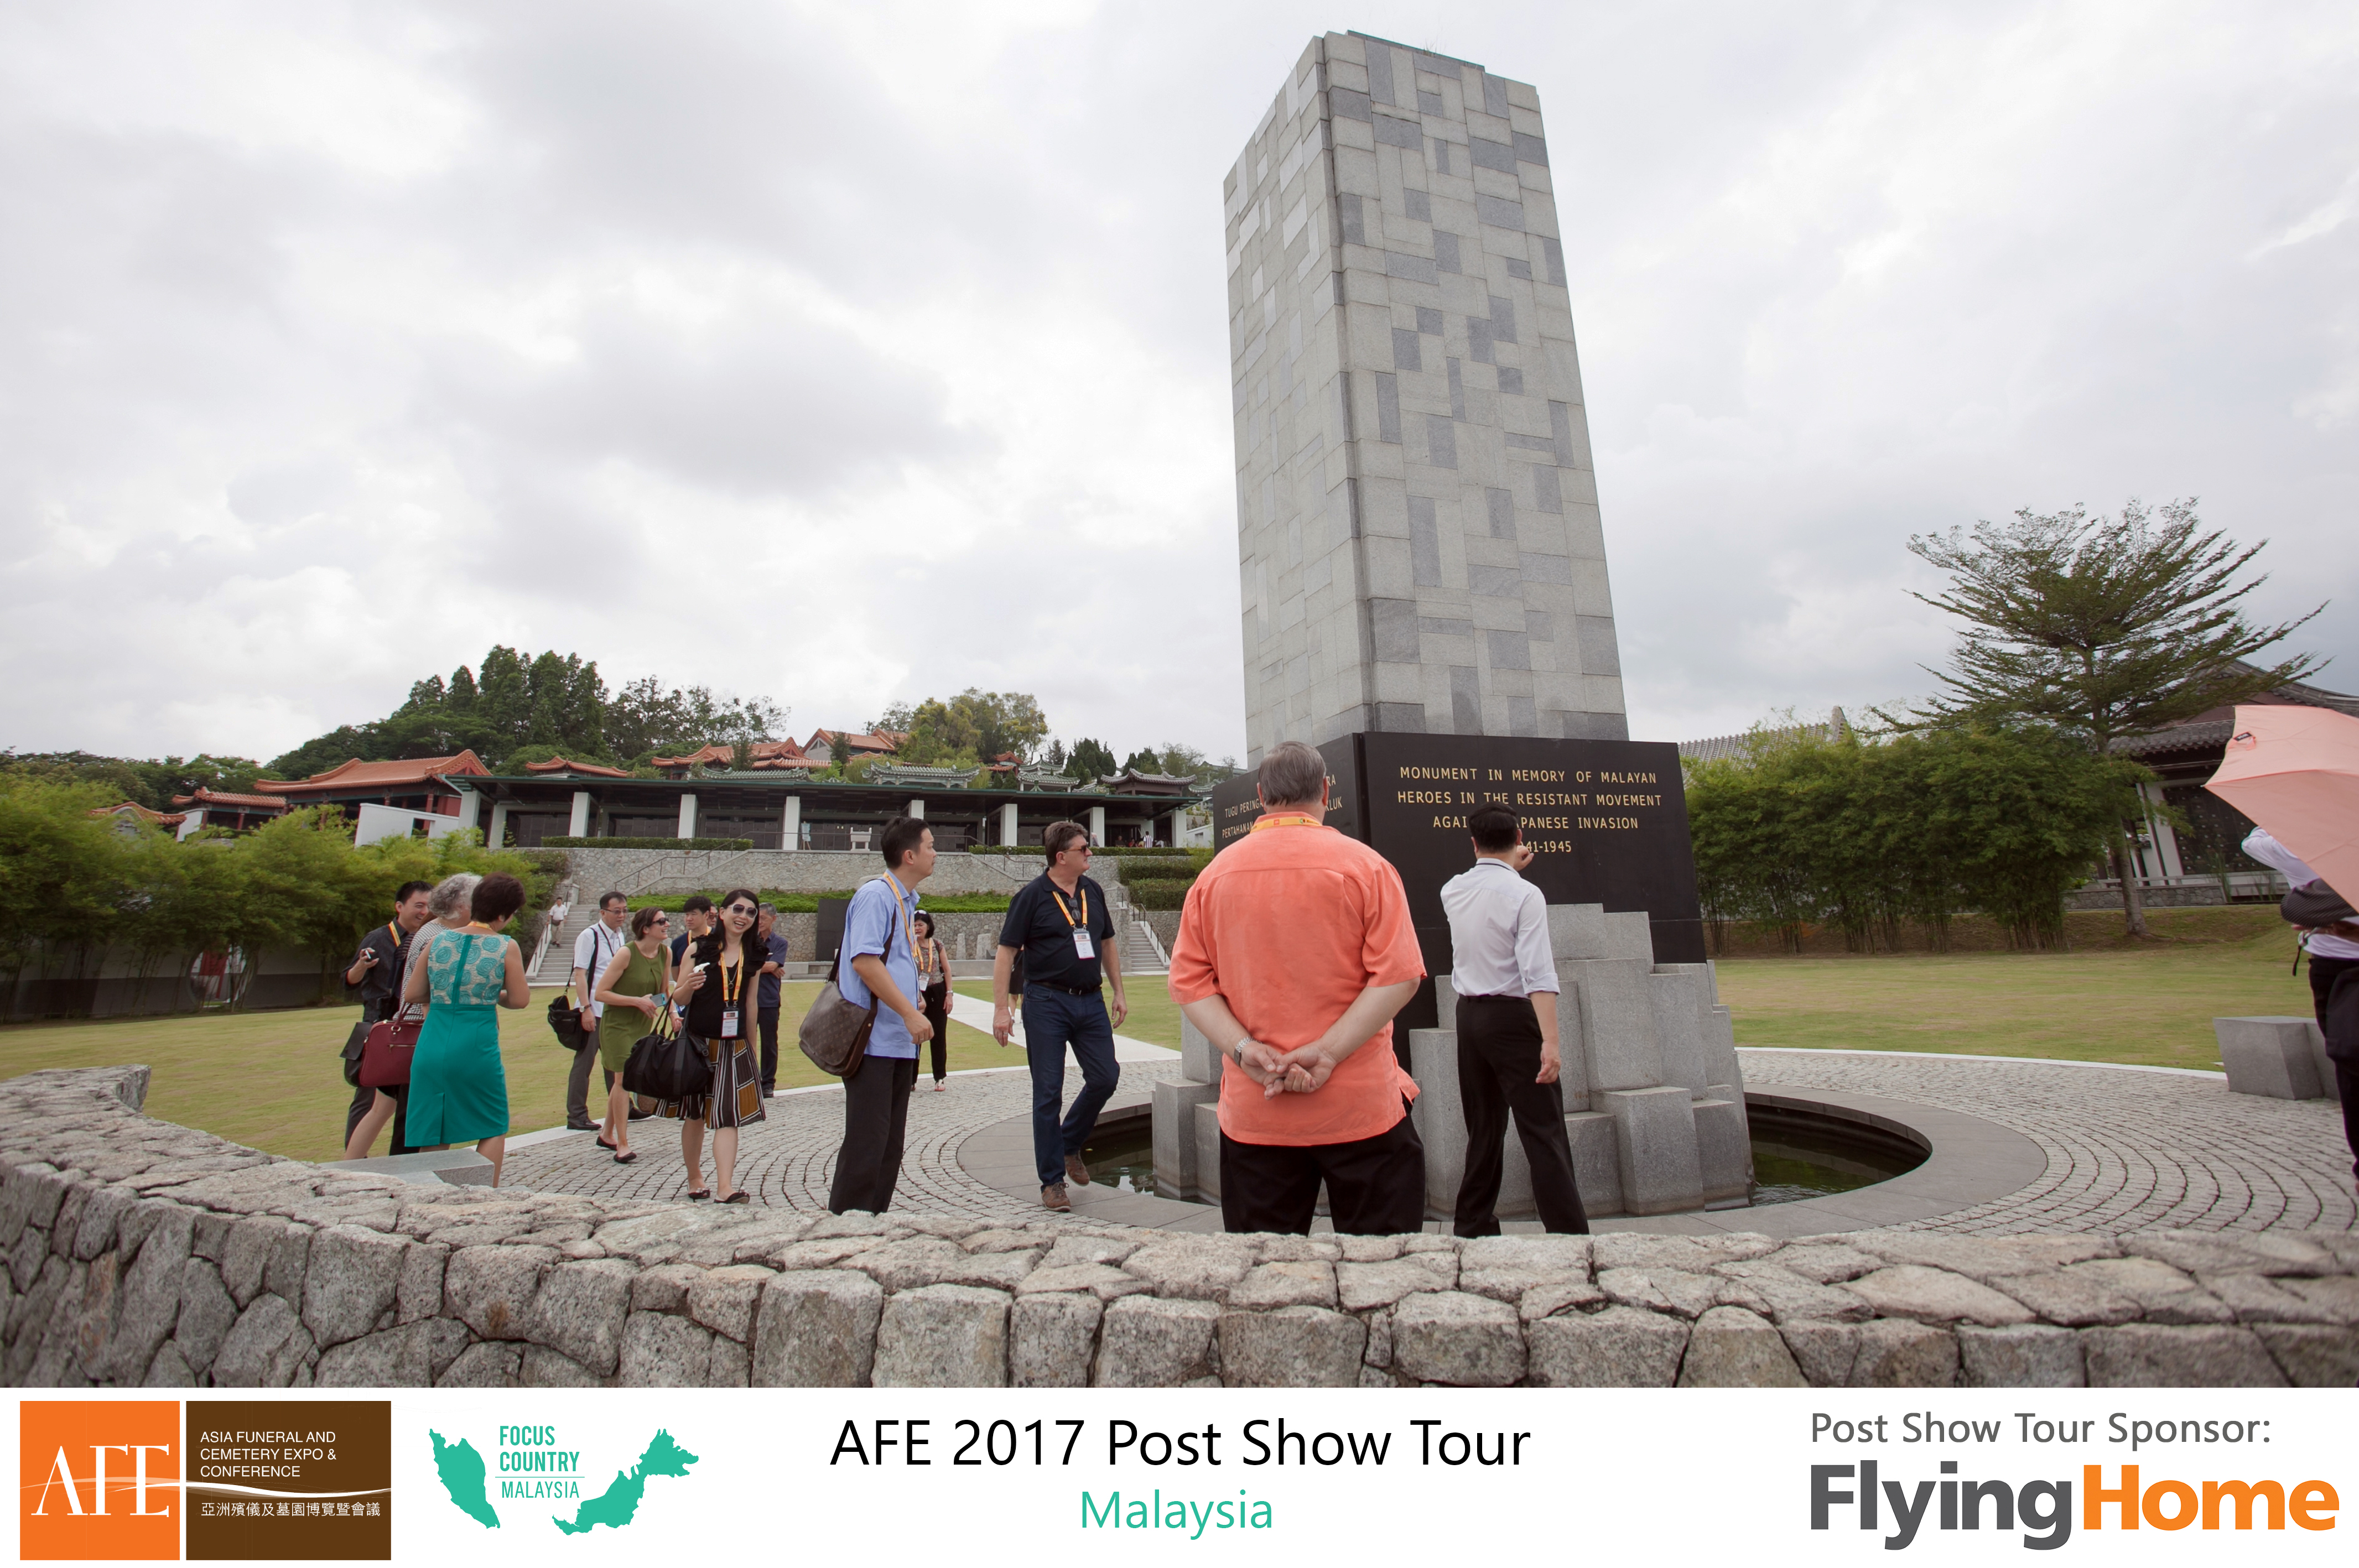 AFE Post Show Tour 2017 Day 3 -09